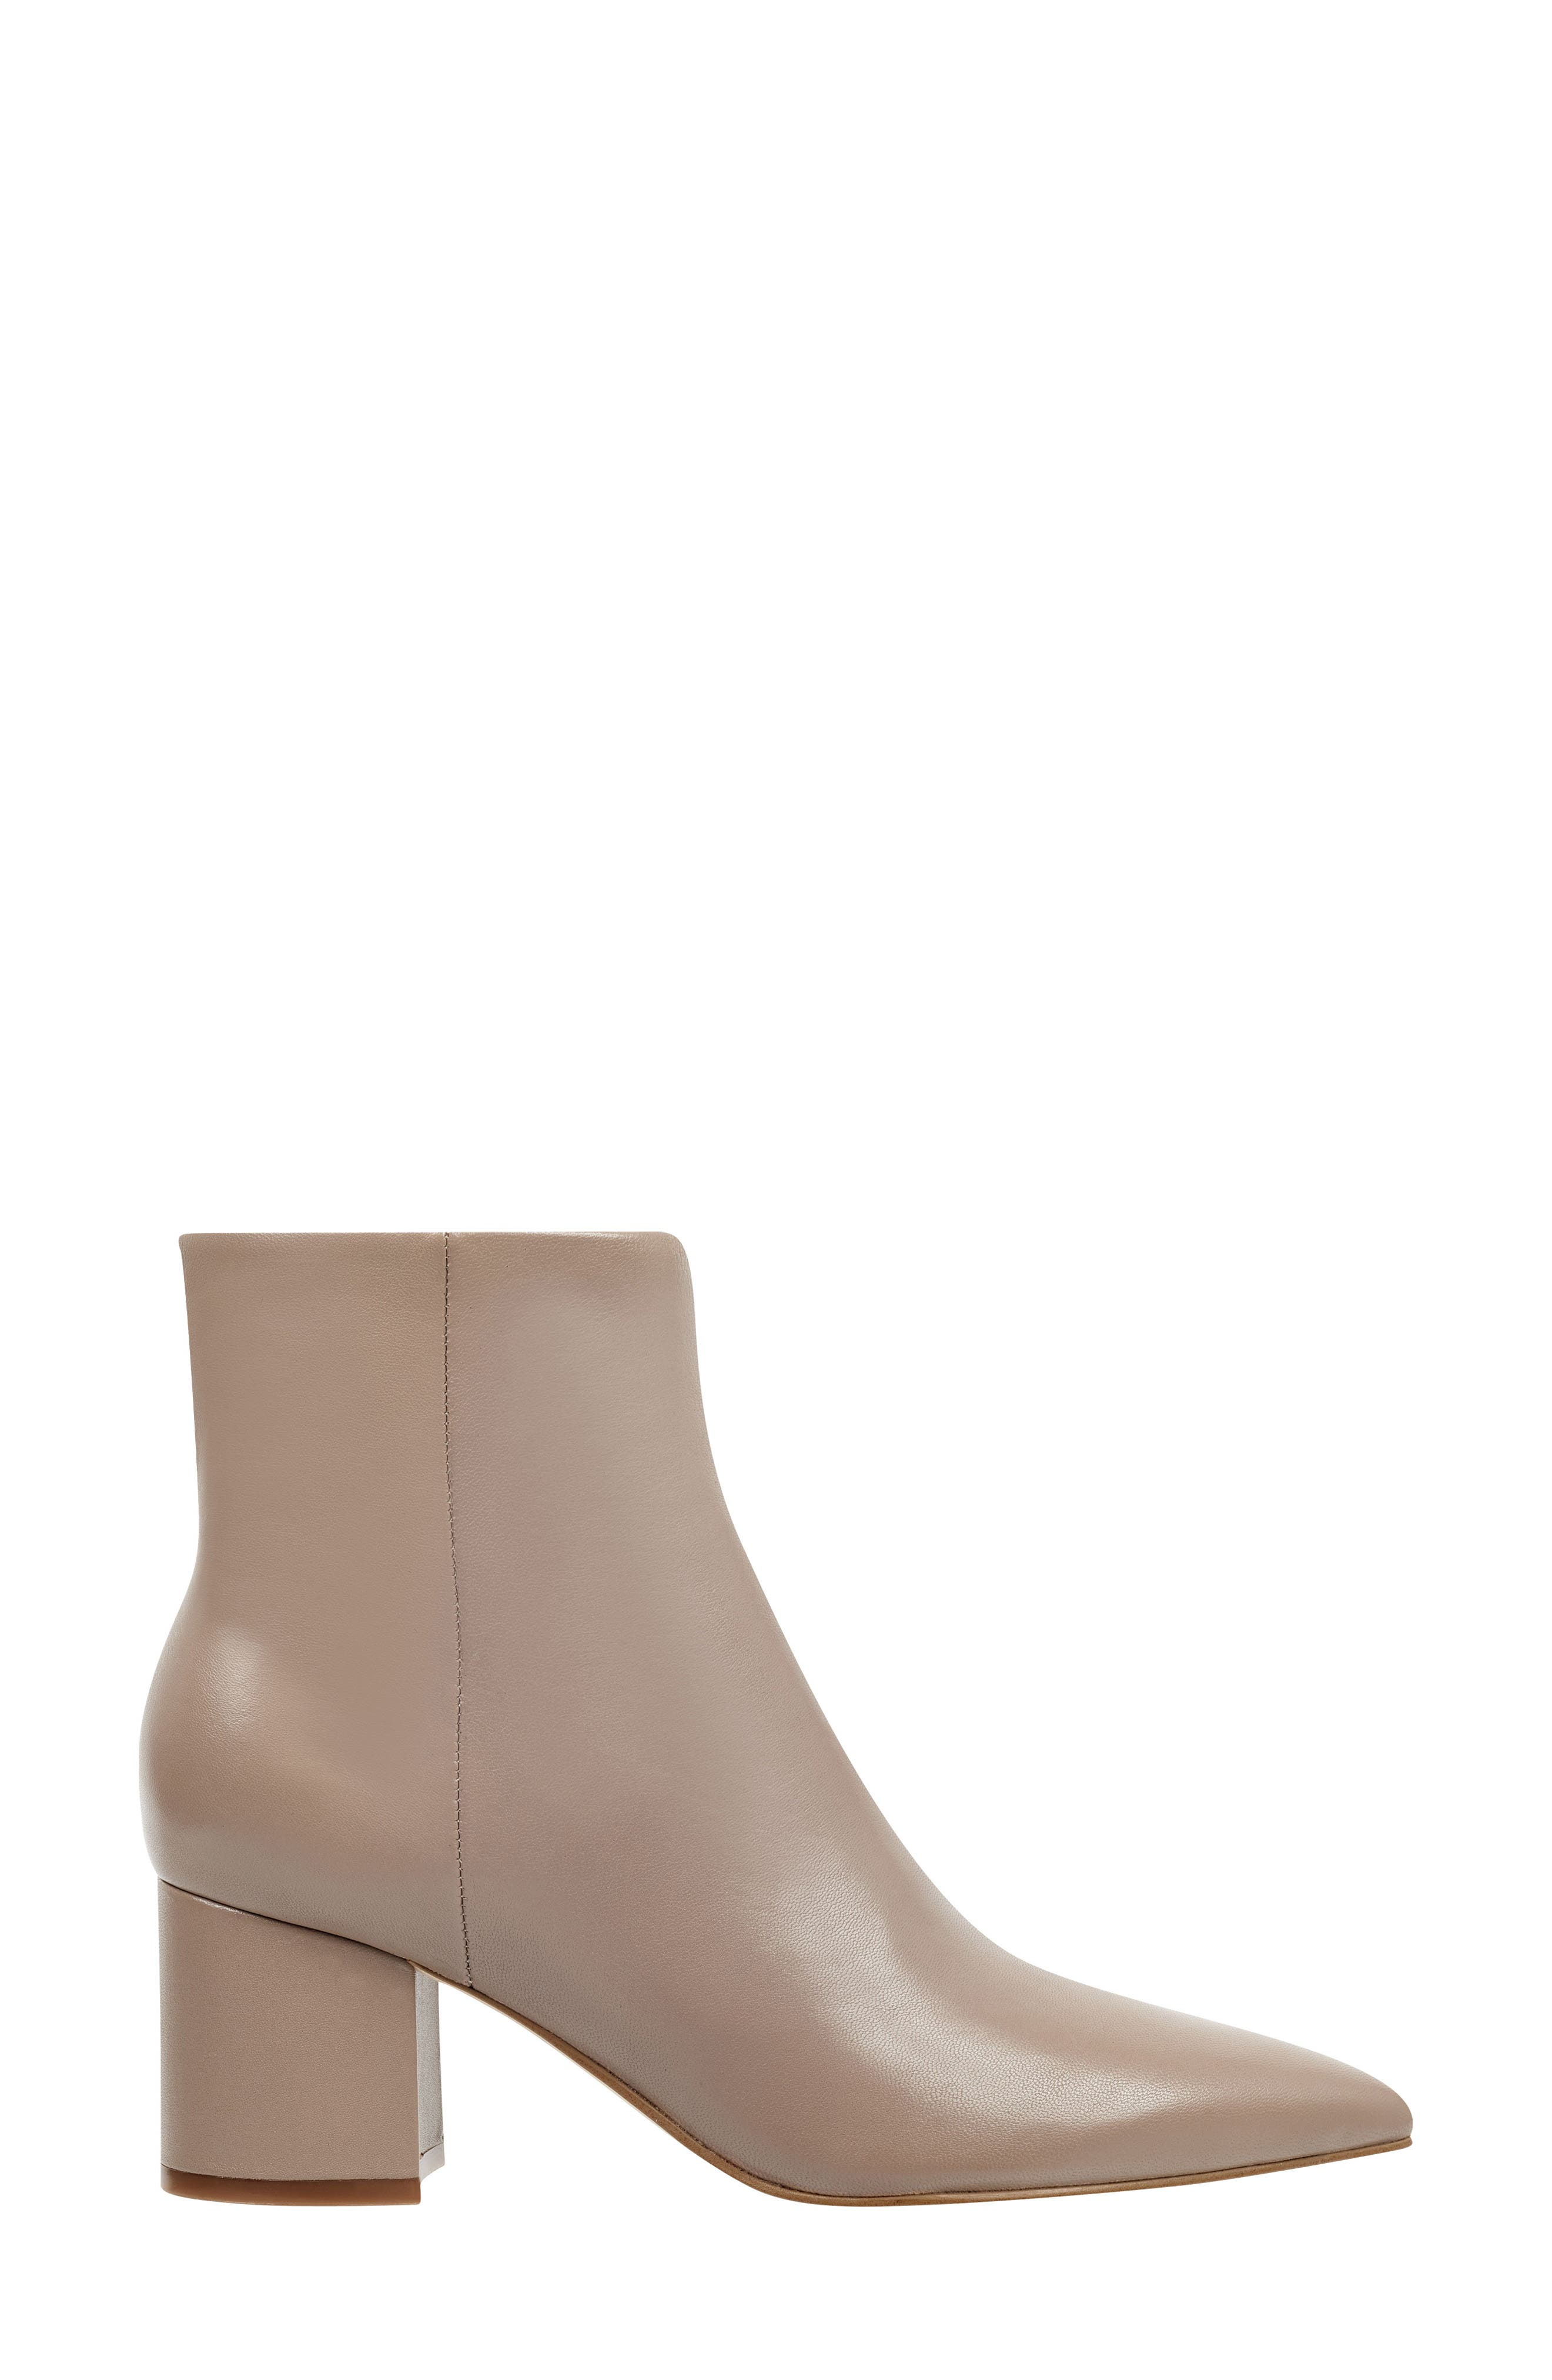 Jarli Bootie,                             Alternate thumbnail 3, color,                             TAUPE LEATHER